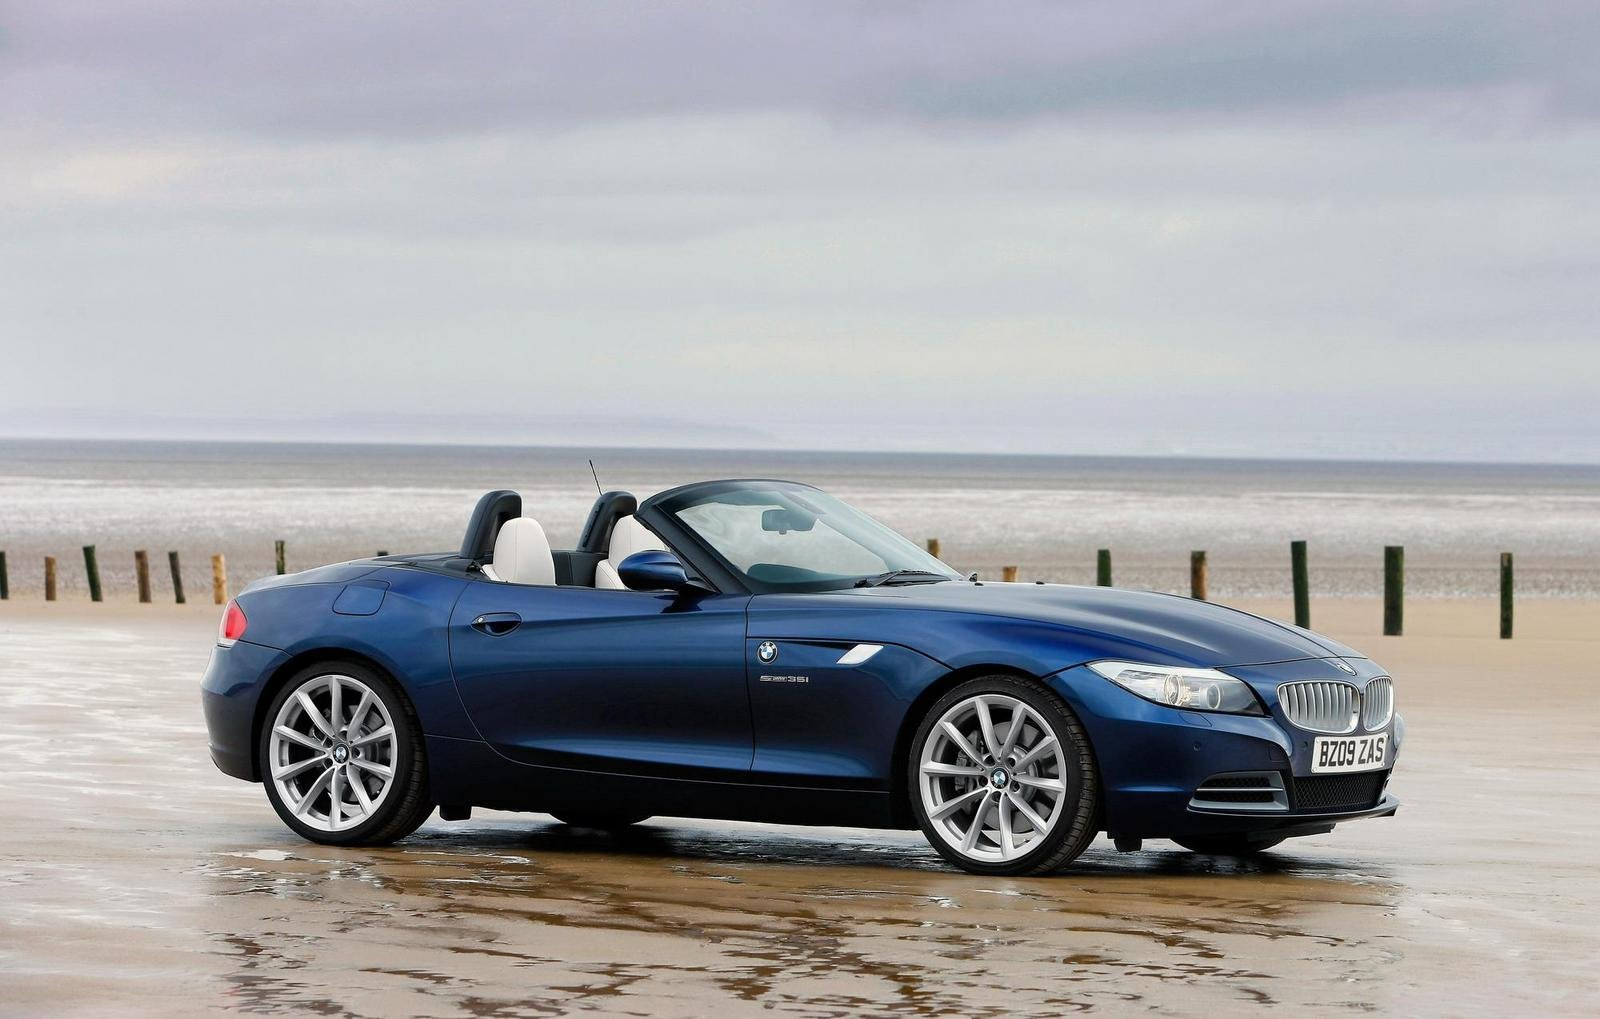 2009 bmw z4 roadster picture 299358 car review top speed. Black Bedroom Furniture Sets. Home Design Ideas